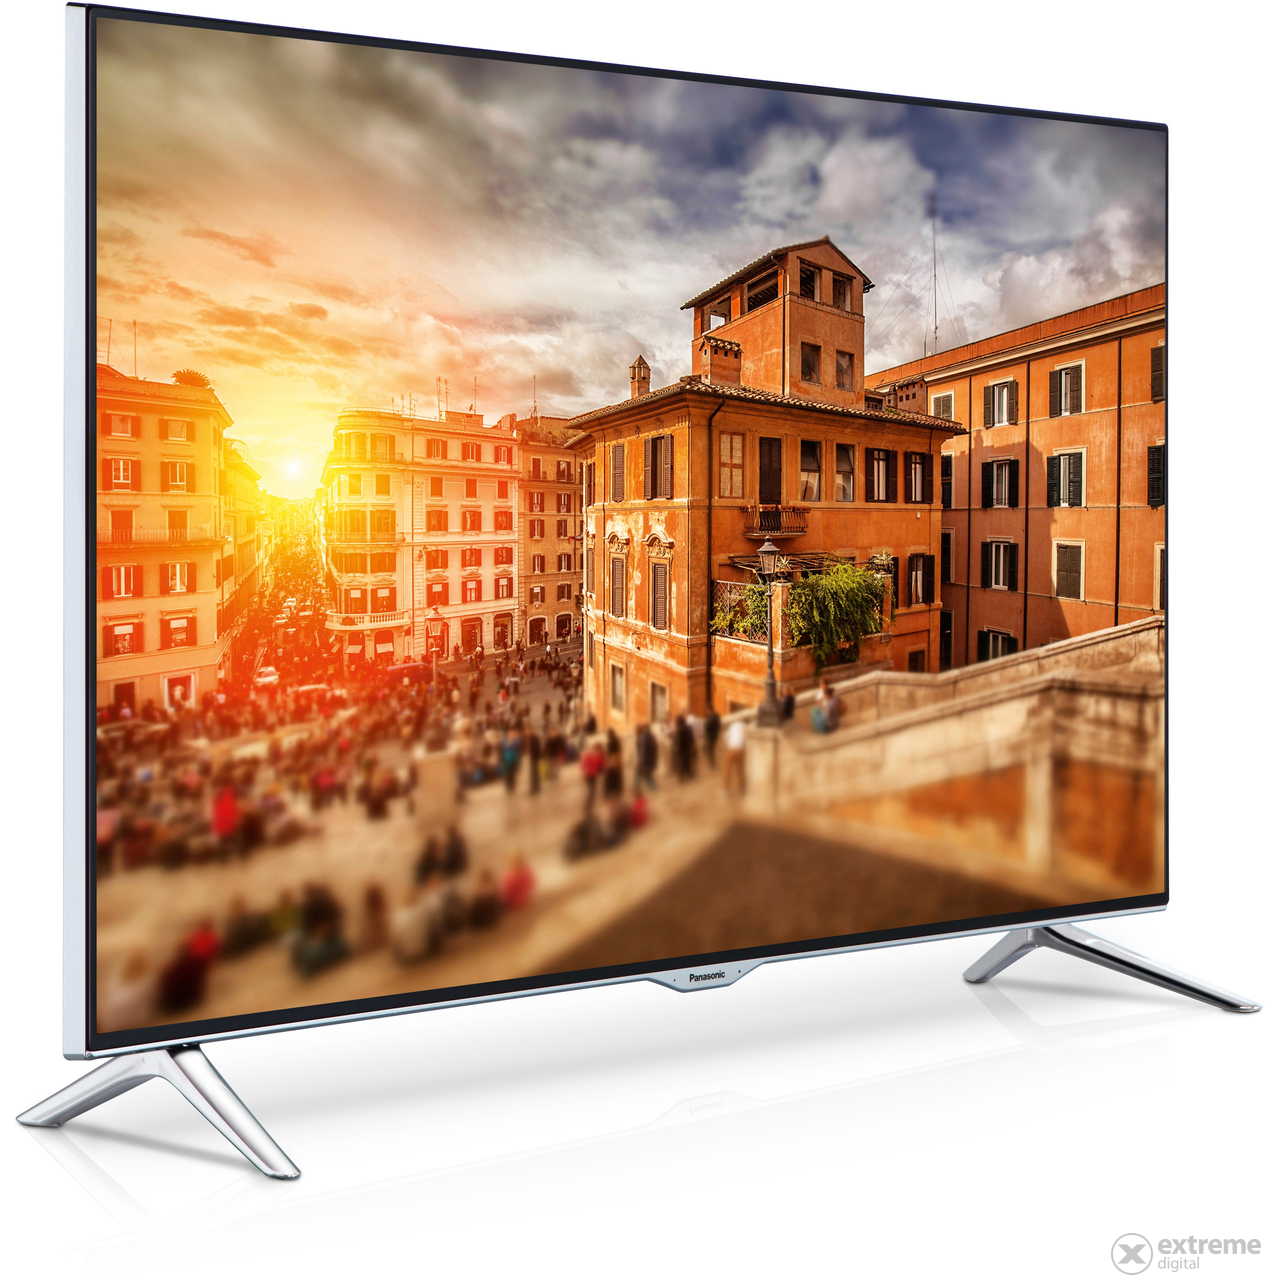 panasonic-tx-48cx400e-uhd-3d-smart-led-televizio_34efcc32.jpg